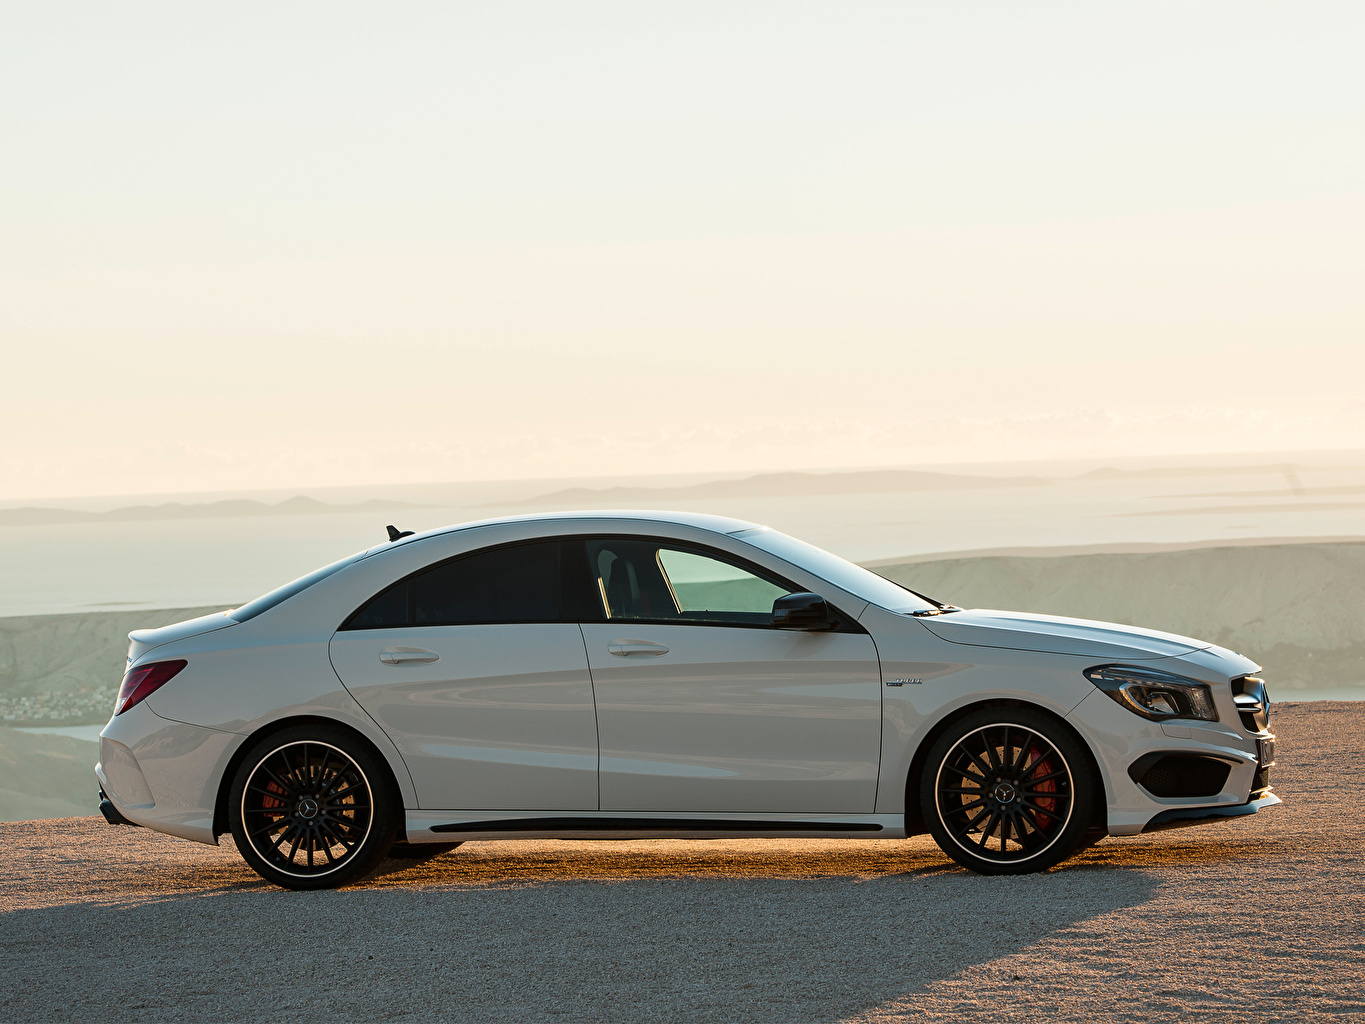 Photos Mercedes-Benz CLA 45 AMG White Side Cars auto automobile